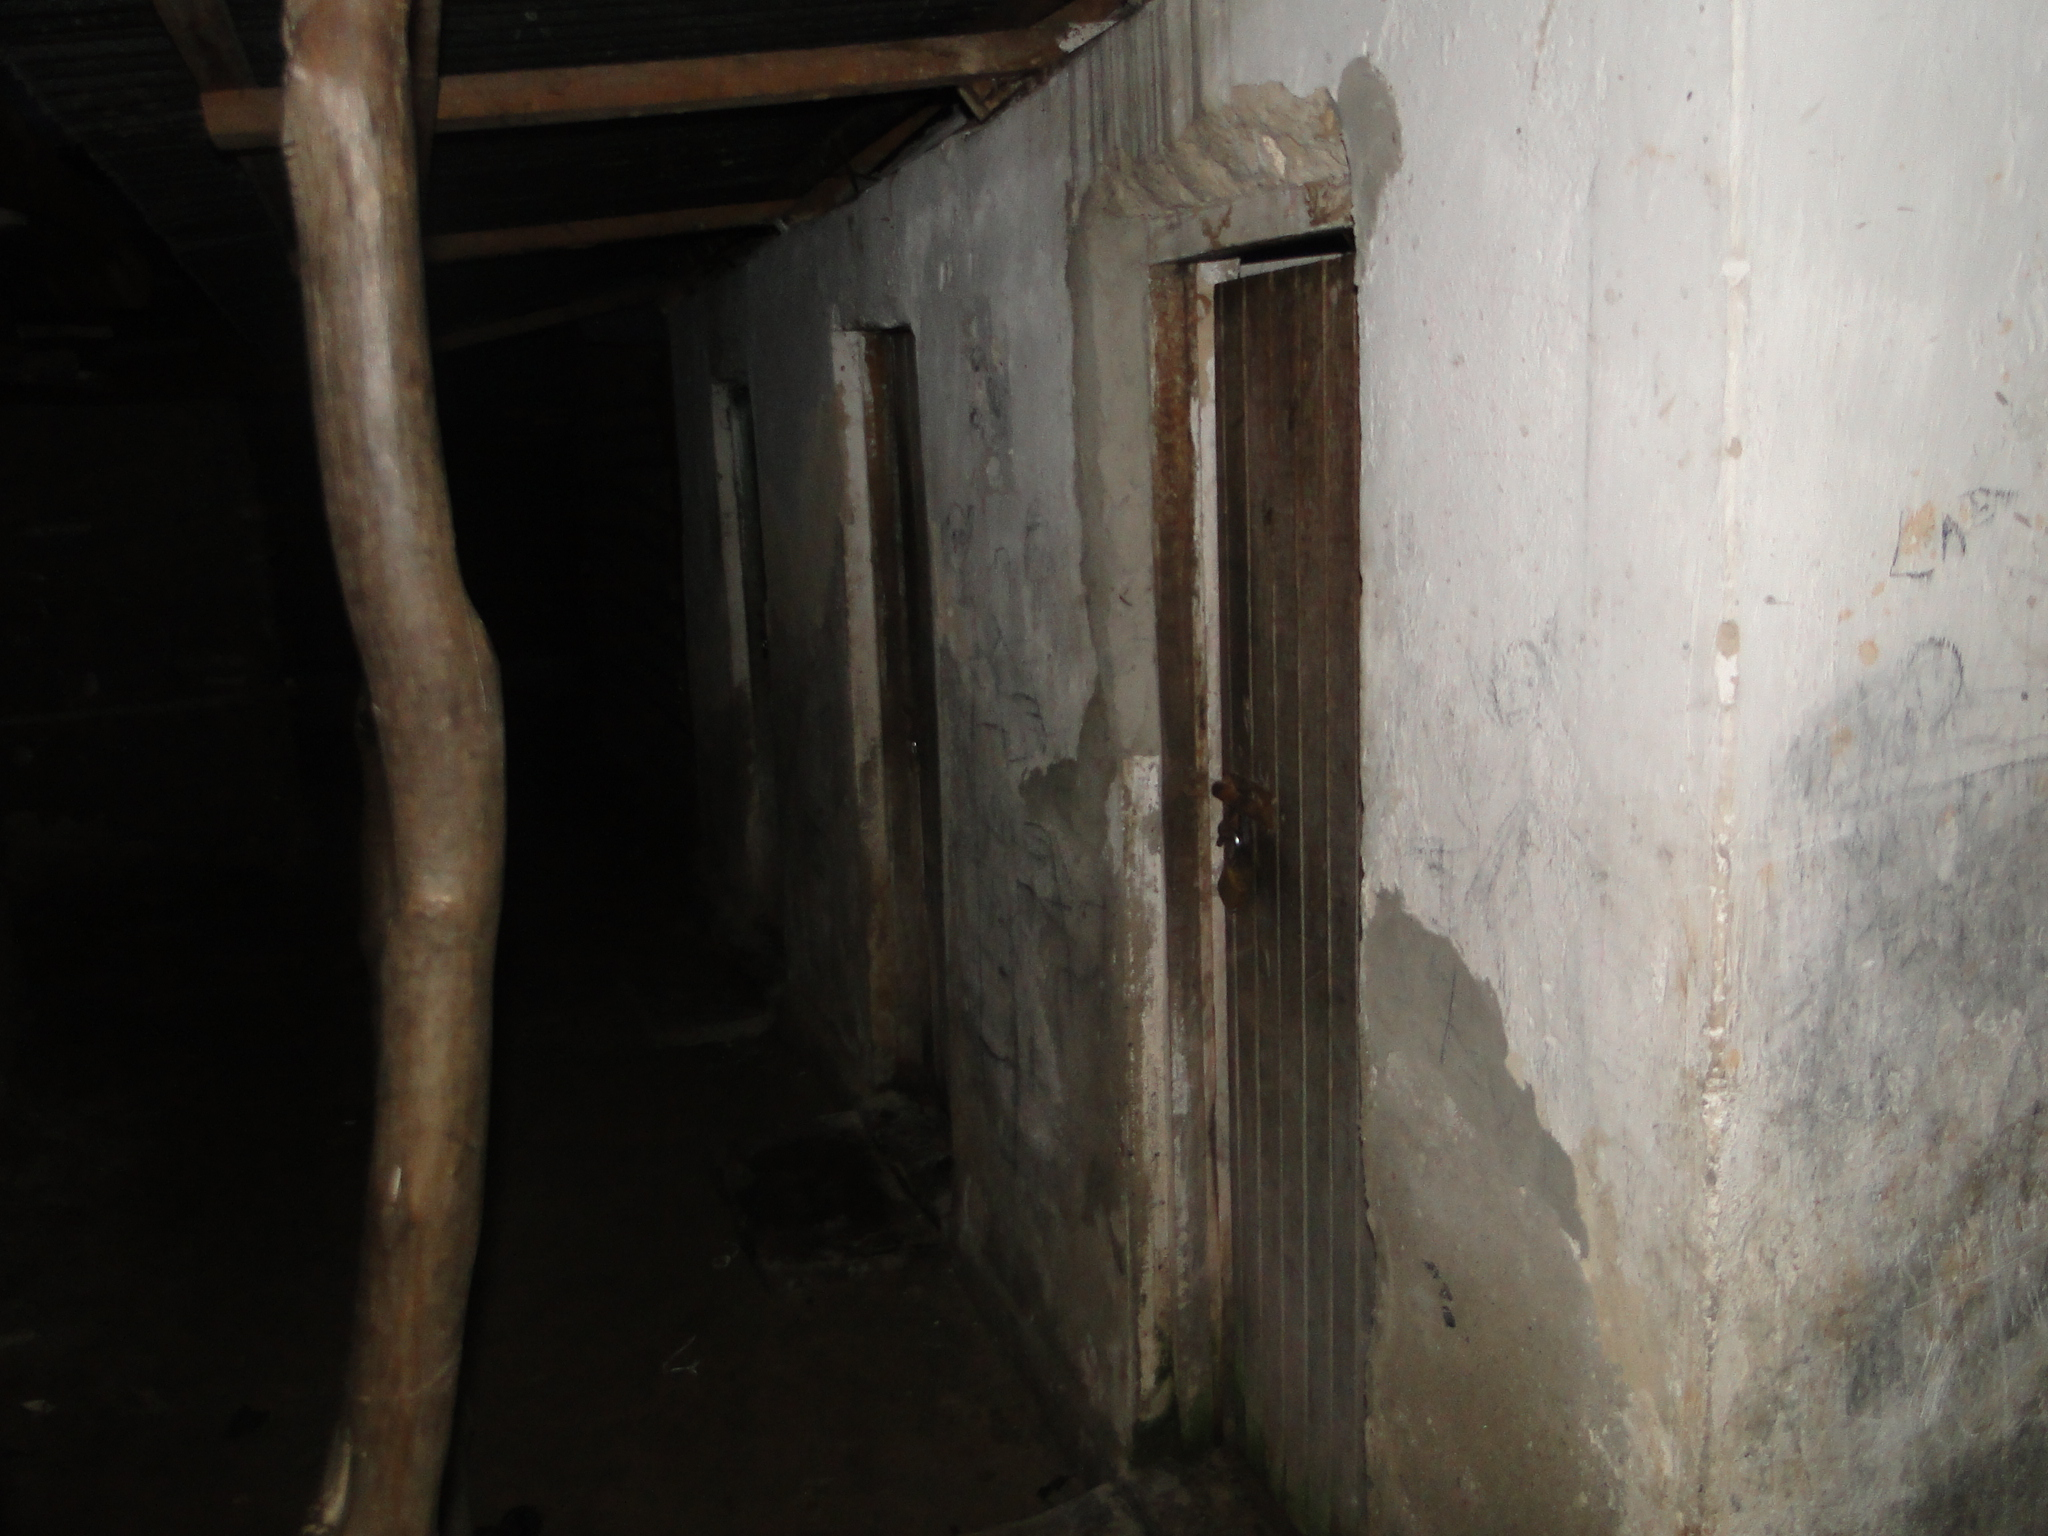 The only existing sanitation facility in the settlement